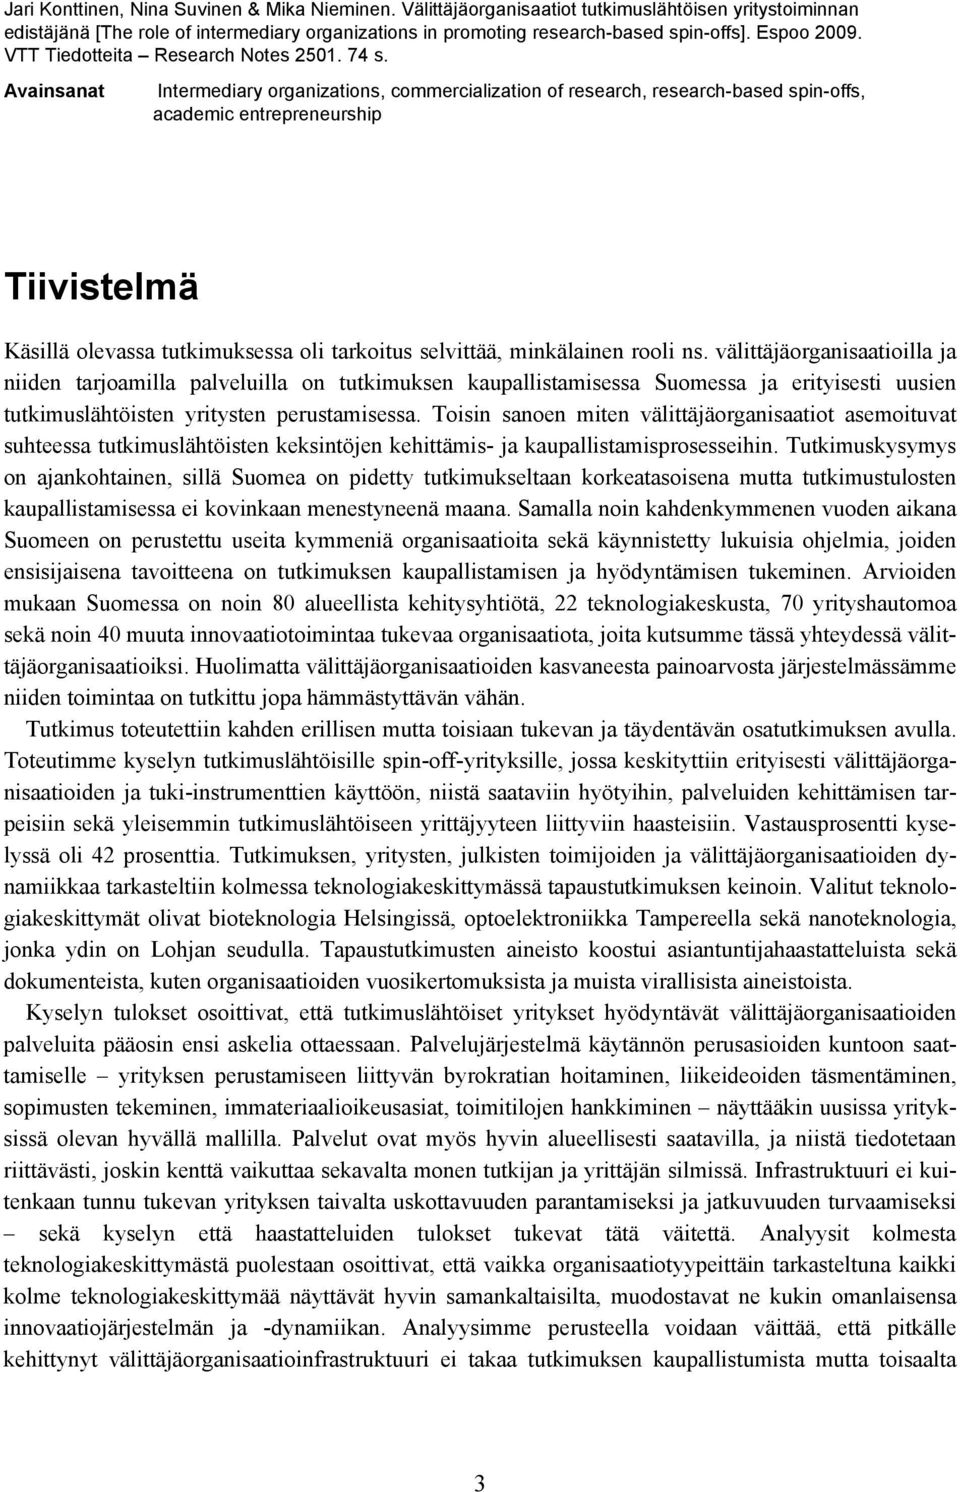 Avainsanat Intermediary organizations, commercialization of research, research-based spin-offs, academic entrepreneurship Tiivistelmä Käsillä olevassa tutkimuksessa oli tarkoitus selvittää,